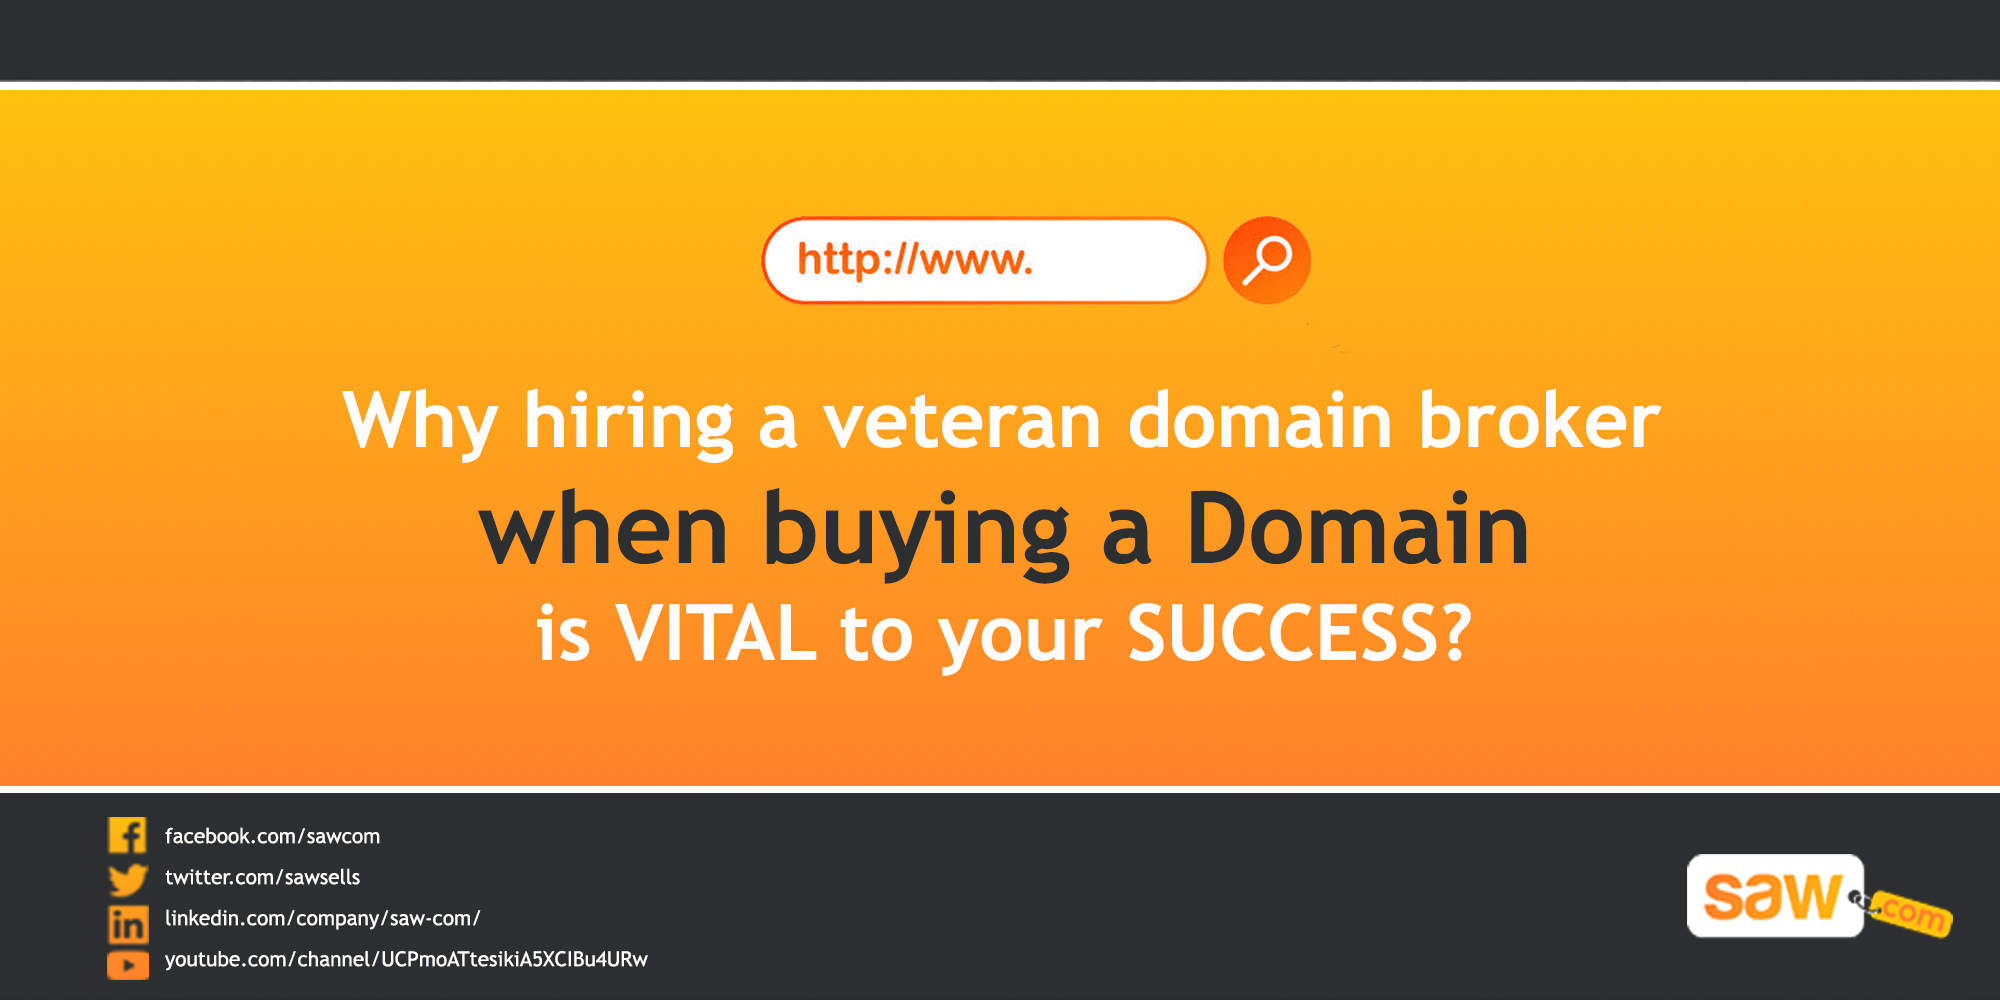 Why hiring a veteran domain broker when buying a domain is vital to your success?